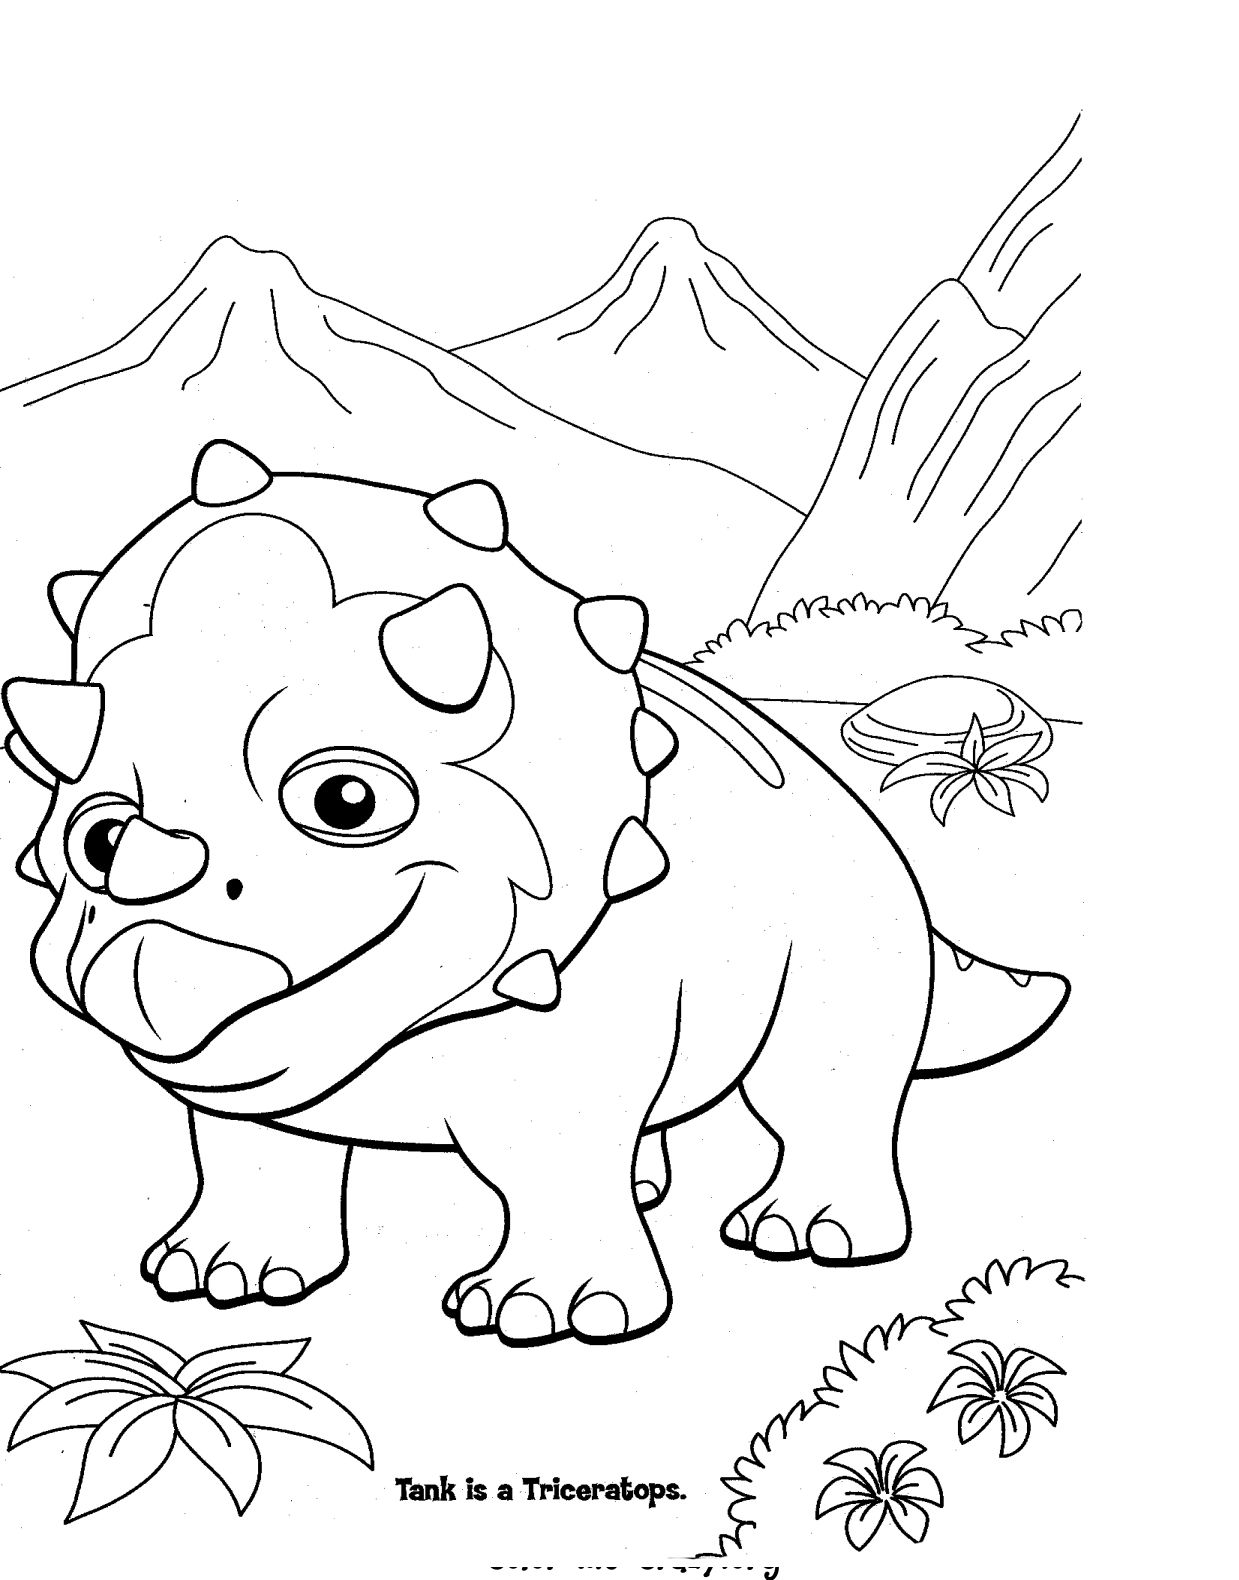 dinosaurs coloring pages printable baby dinosaur coloring pages to download and print for free coloring printable pages dinosaurs